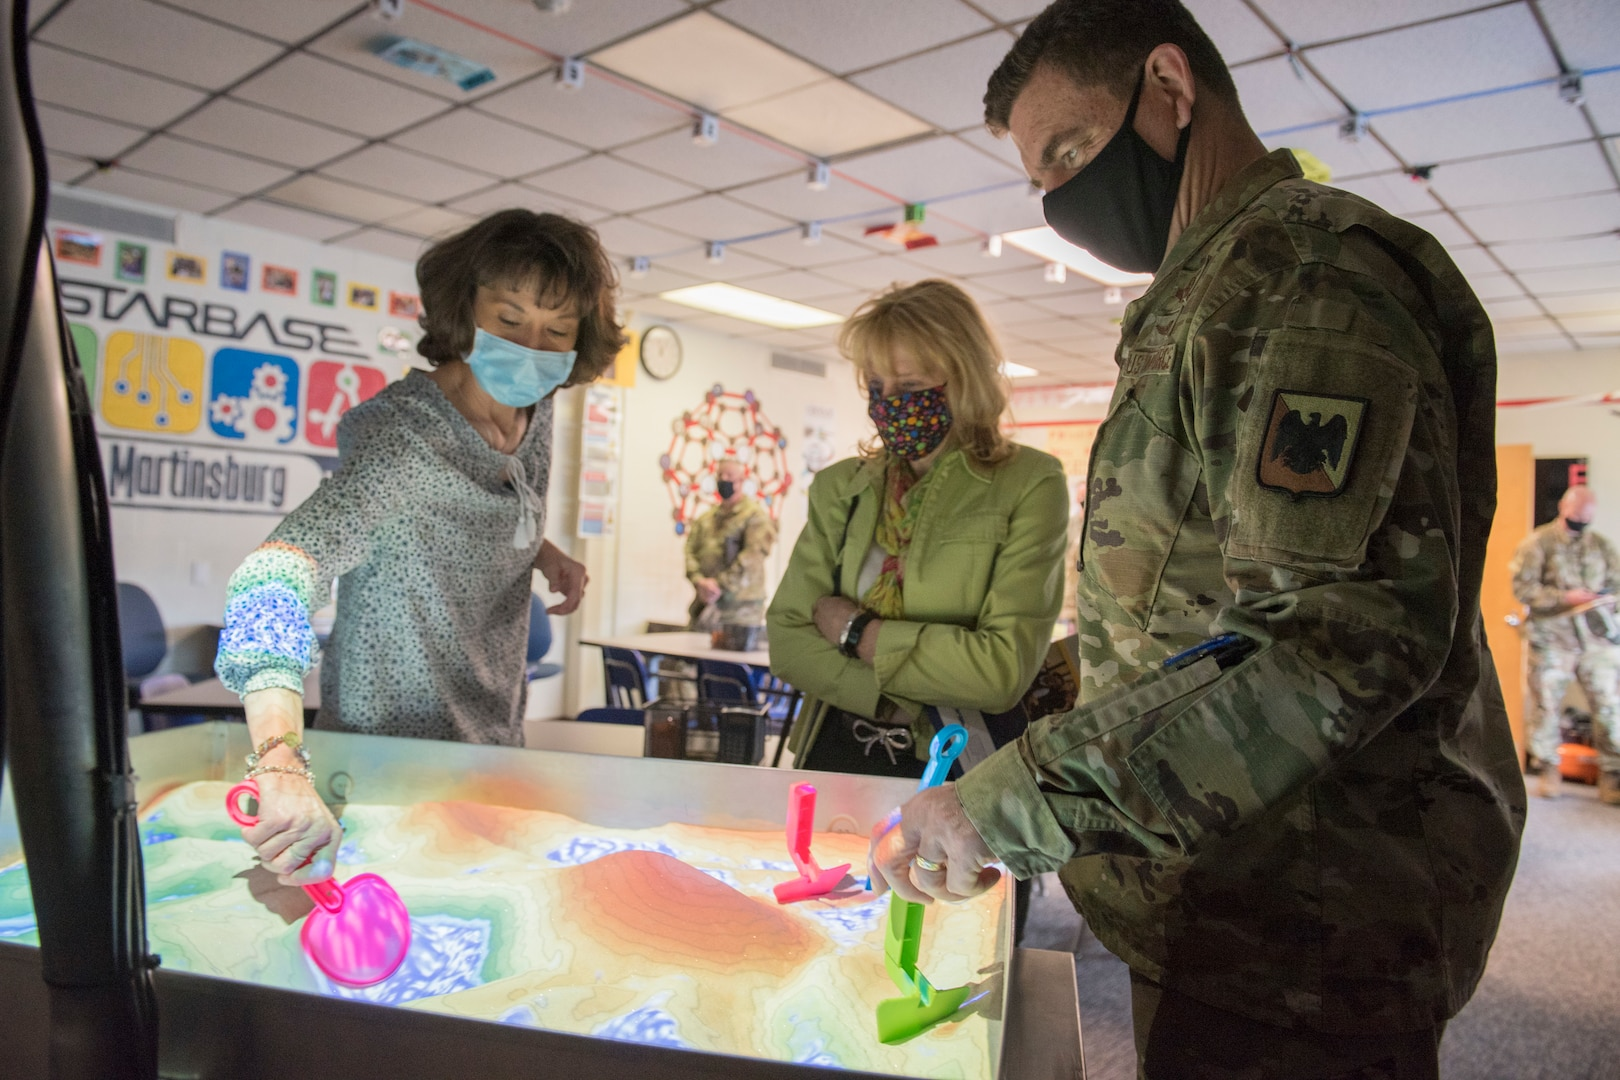 Sherra Triggs, left, director of STARBASE Martinsburg, speaks with U.S. Air Force Lt. Gen. Michael A. Loh, director, Air National Guard, and his wife Diane Loh, about teaching STARBASE curriculum through the COVID-19 pandemic, during their visit to the 167th Airlift Wing, West Virginia National Guard, at Shepherd Field Air National Guard Base in Martinsburg, West Virginia, March 9, 2021. During his visit, Loh received updates on the unit's current operations and response to the COVID-19 pandemic